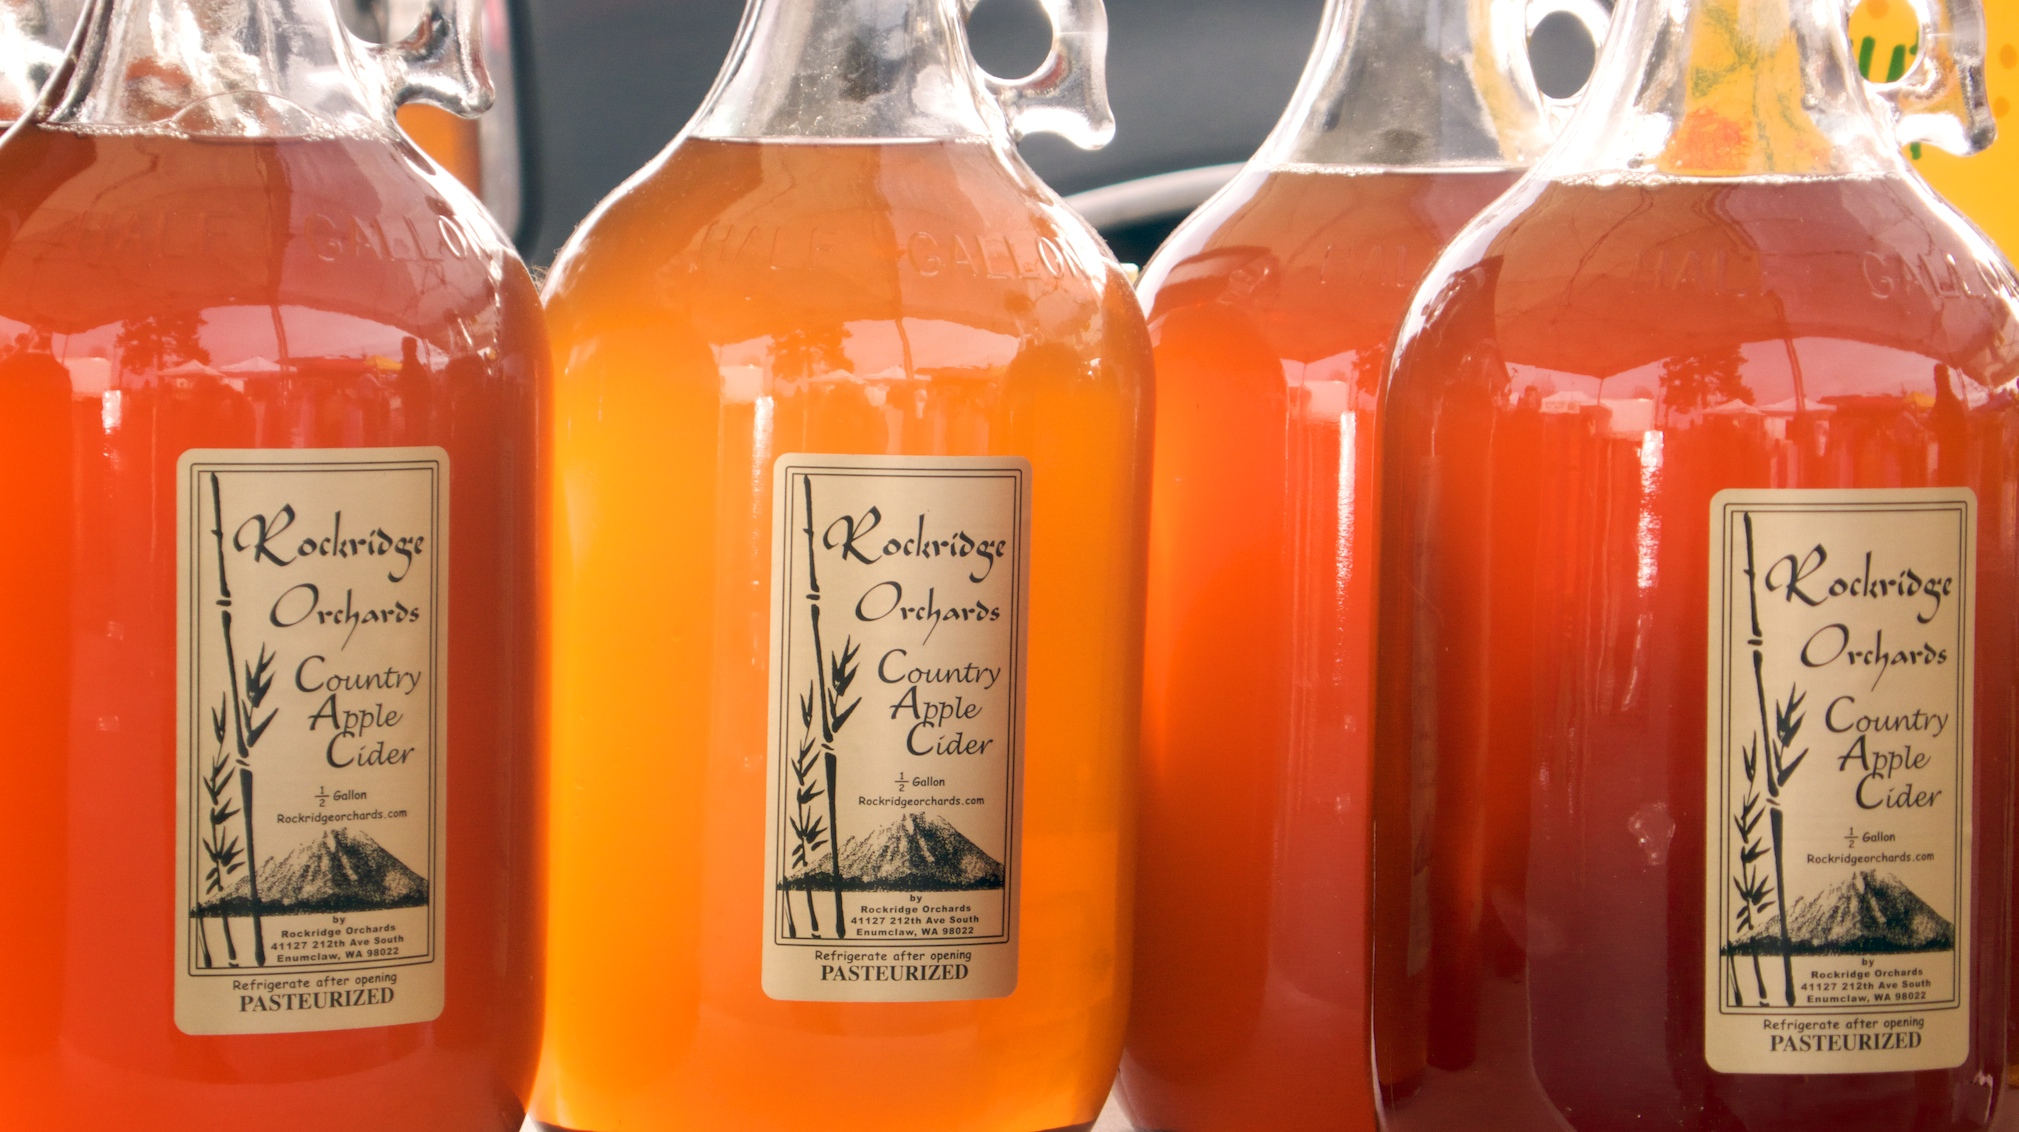 ... -News: Hendersonville apple growers look to tap into hard cider trend